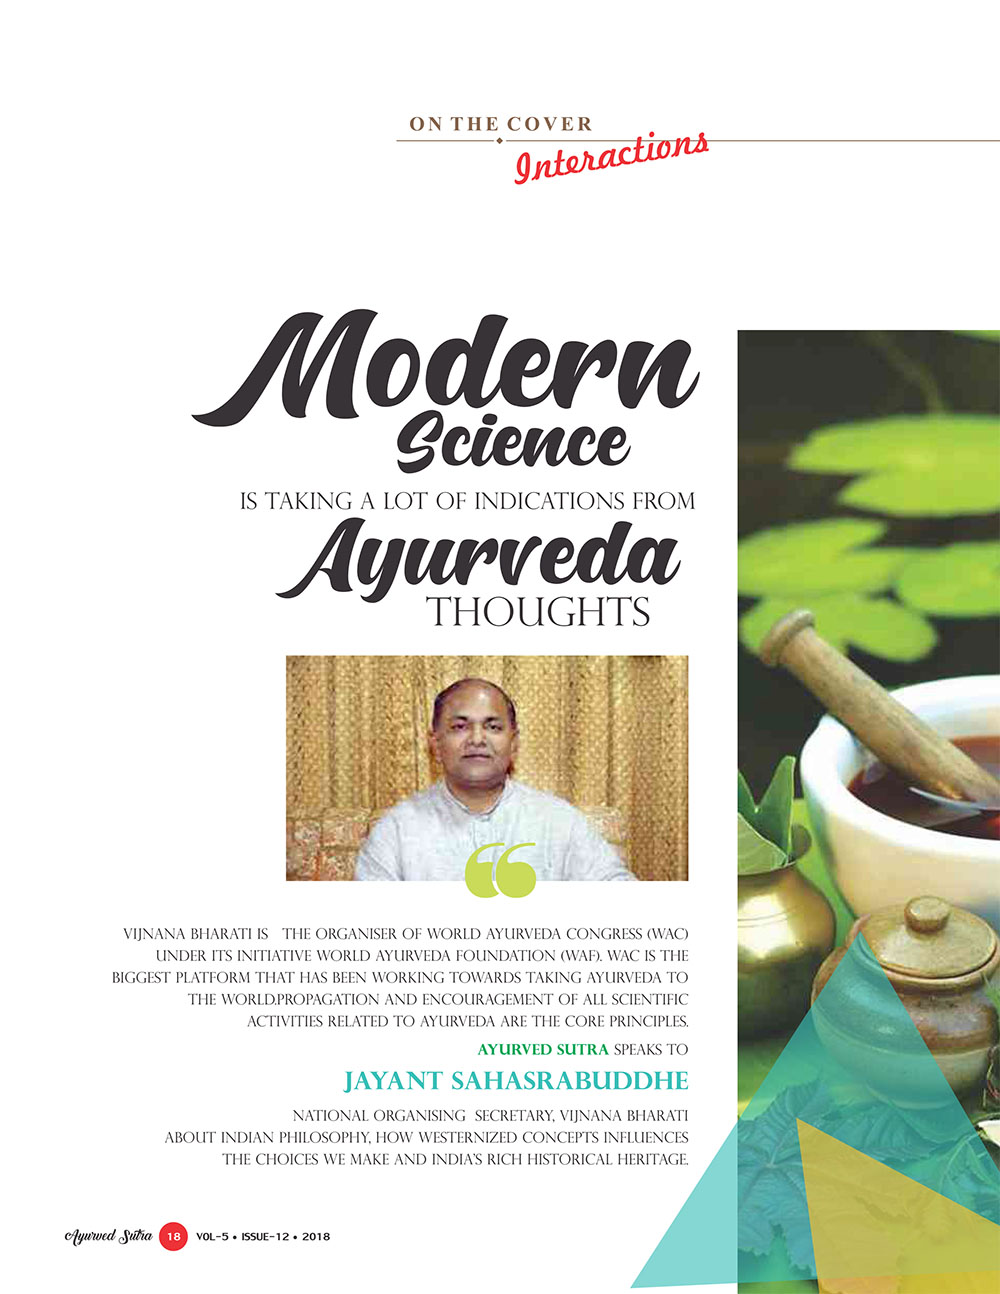 Ayurvedsutra Vol 05 issue 12 20 - Modern Science is taking a lot of Indications from Ayurveda thoughts